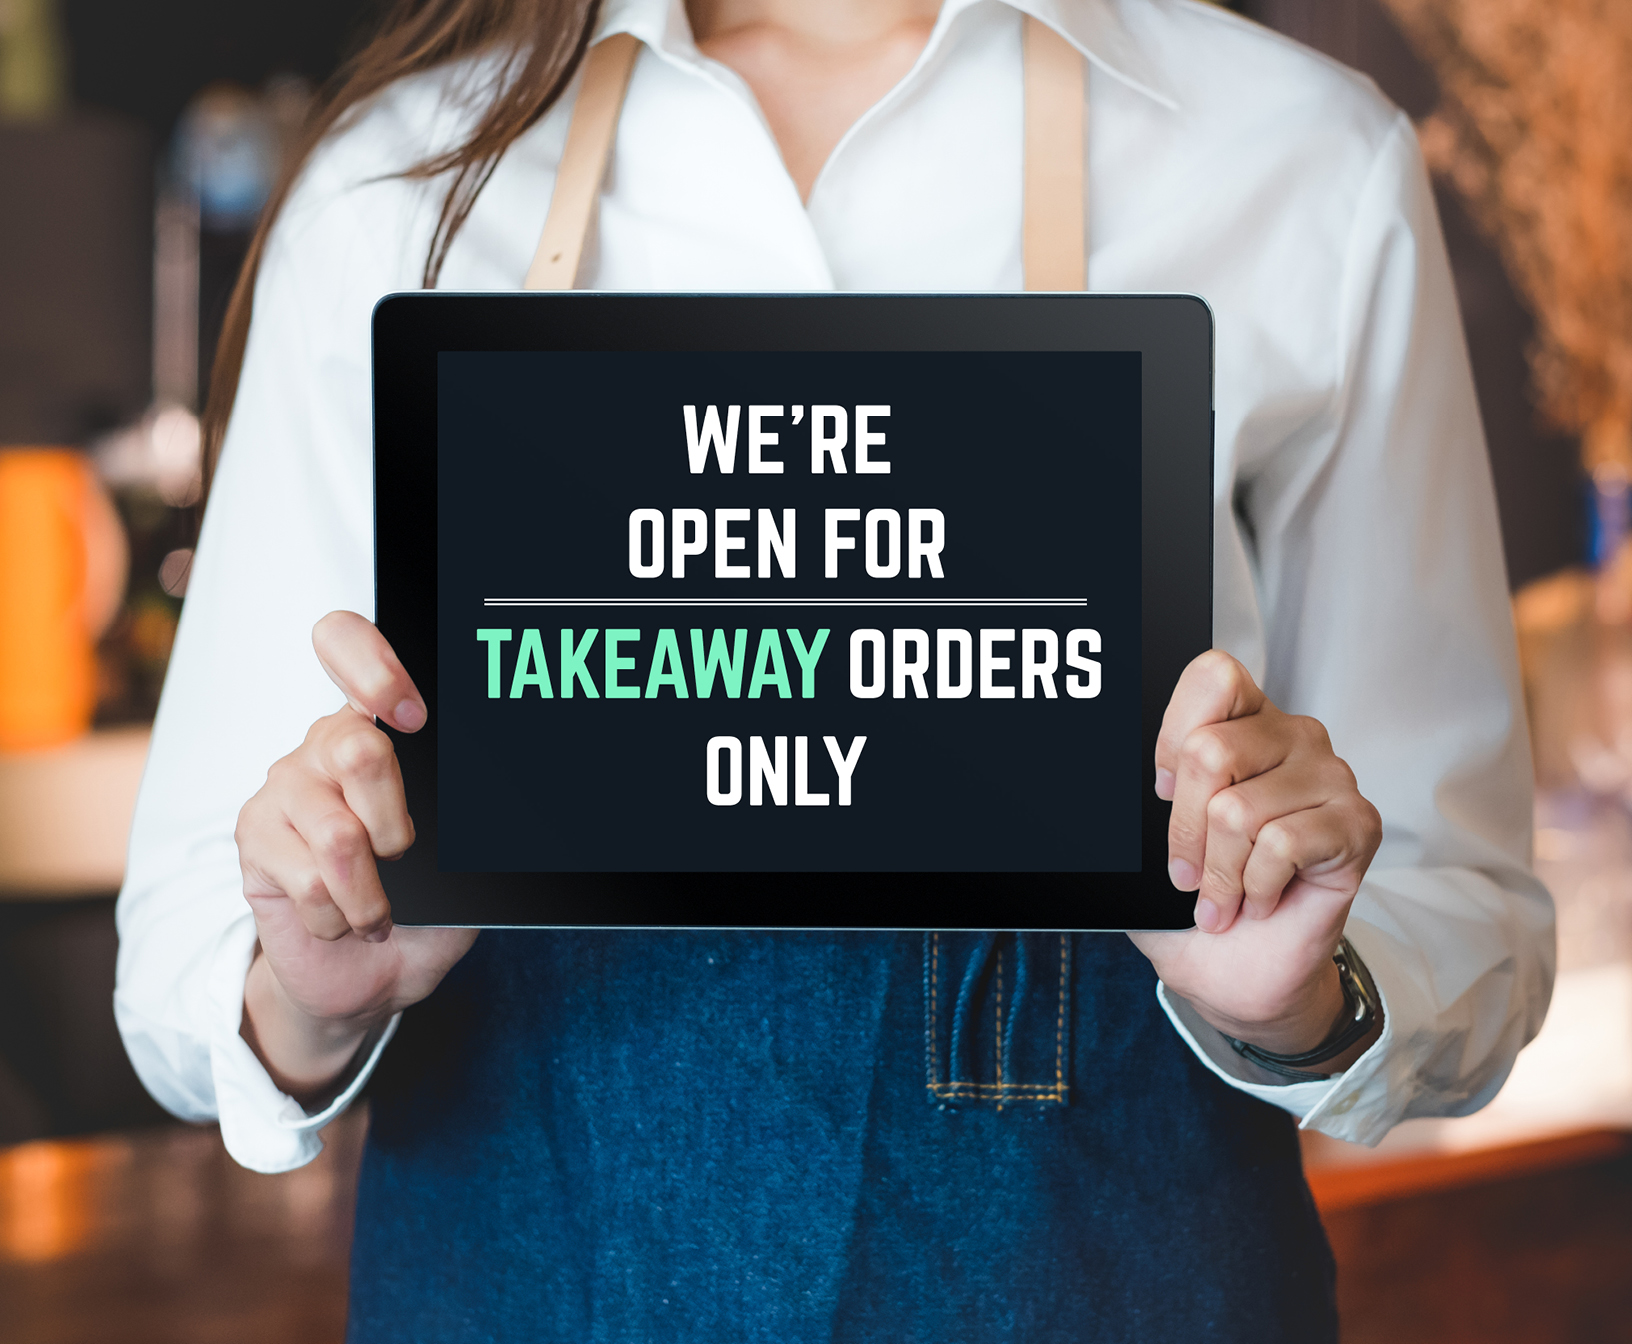 A young female from a cafe holding an Ipad that displays an 'open for takeaway orders' sign